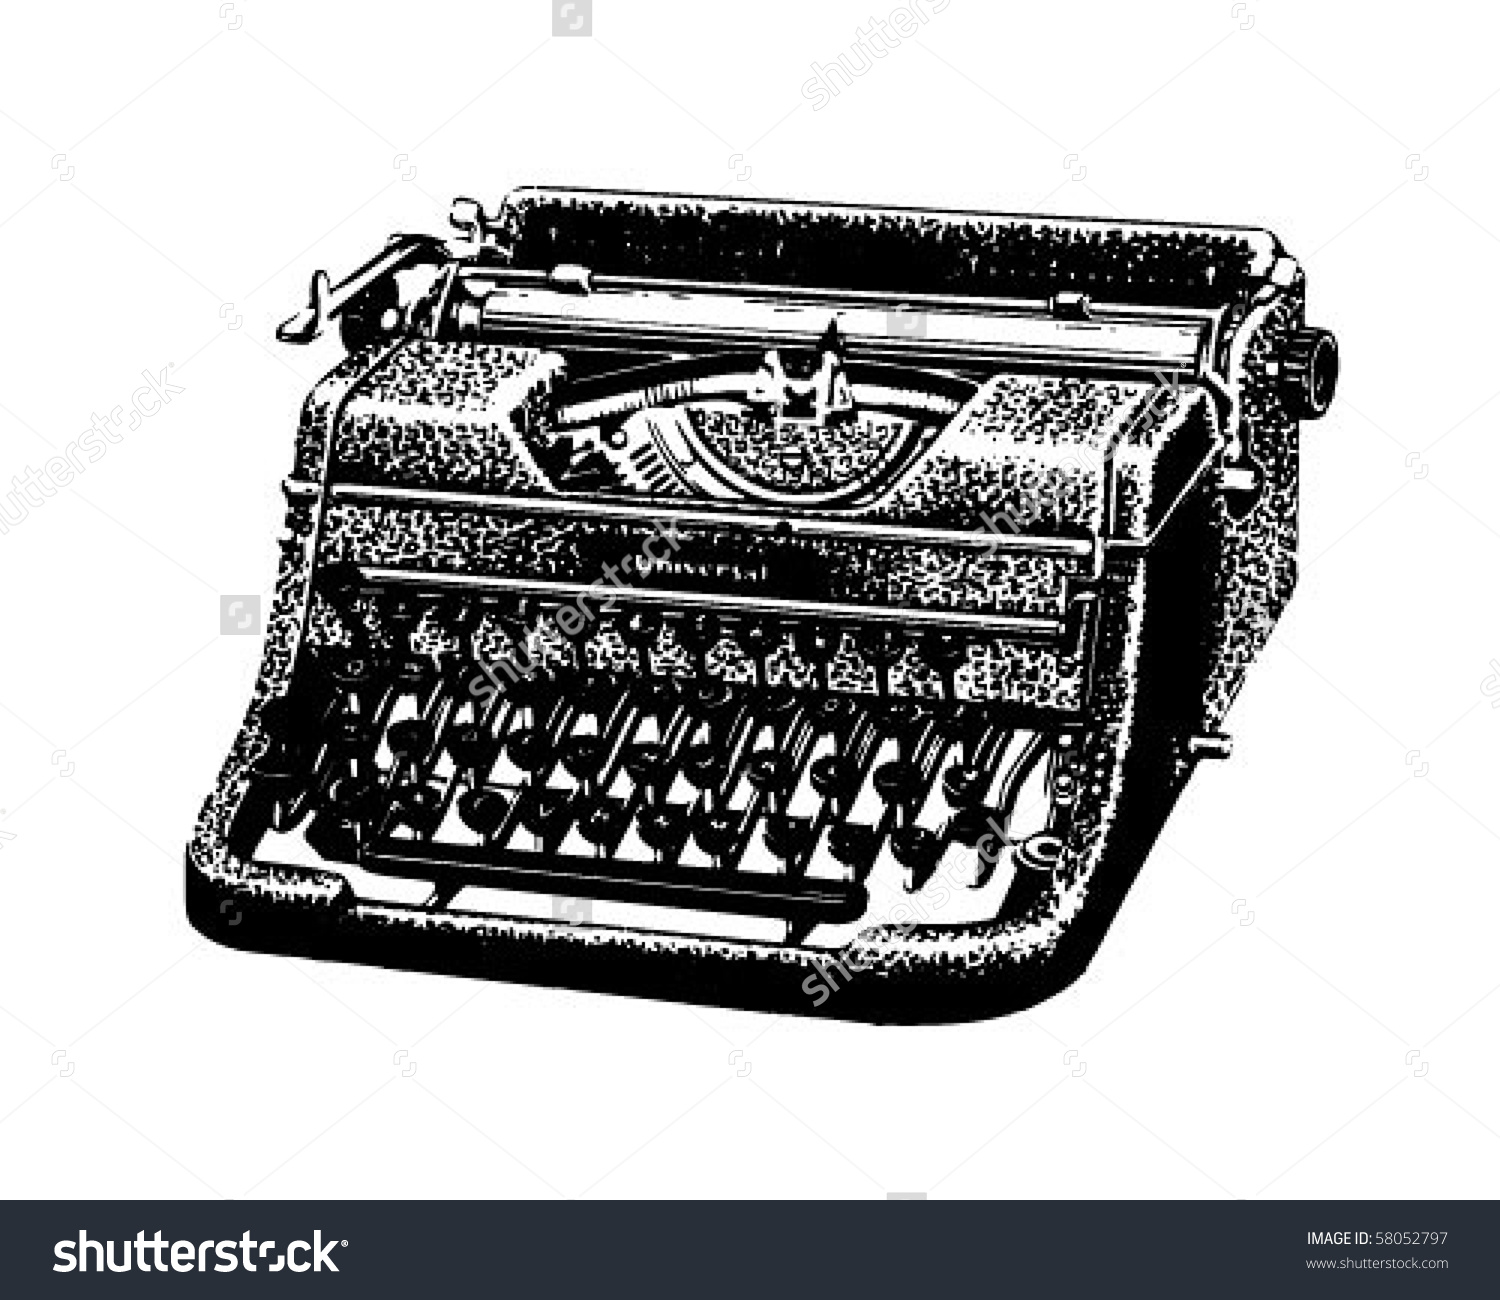 Typewriter clipart #2, Download drawings